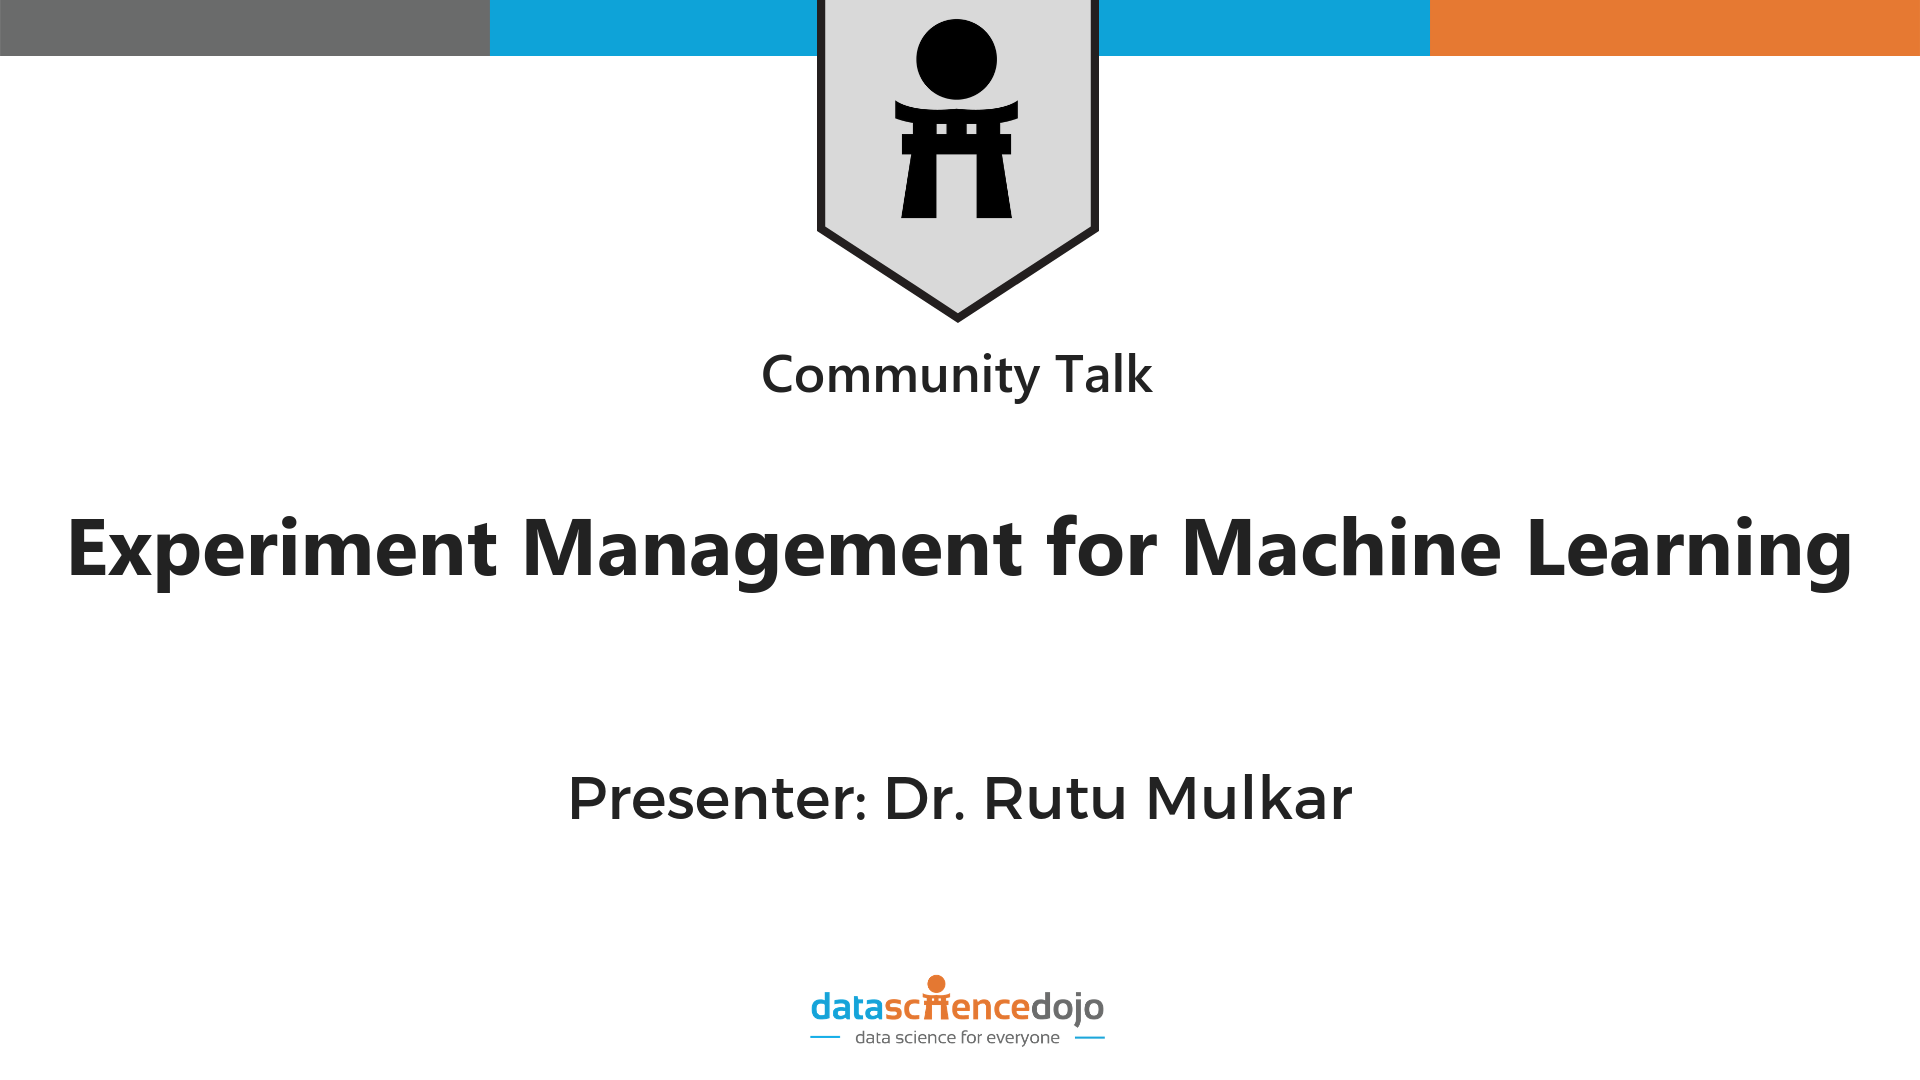 experiment management for machine learning » Data Science Dojo